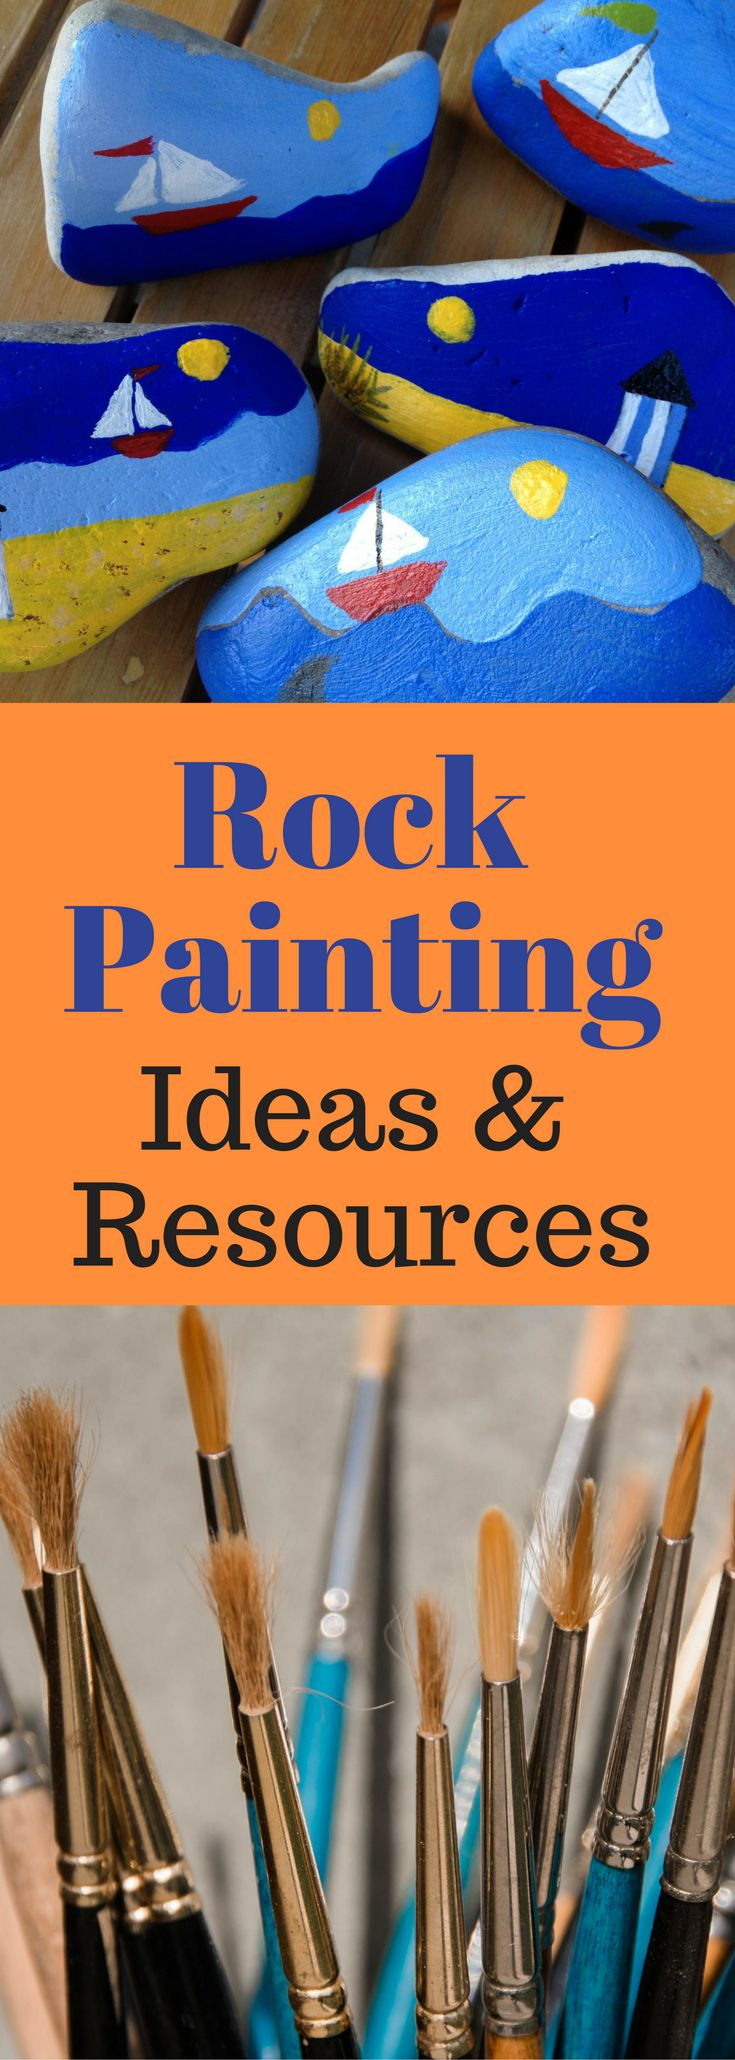 Rock Painting Ideas & Resources - LOTS of information about painted rocks & Supplies